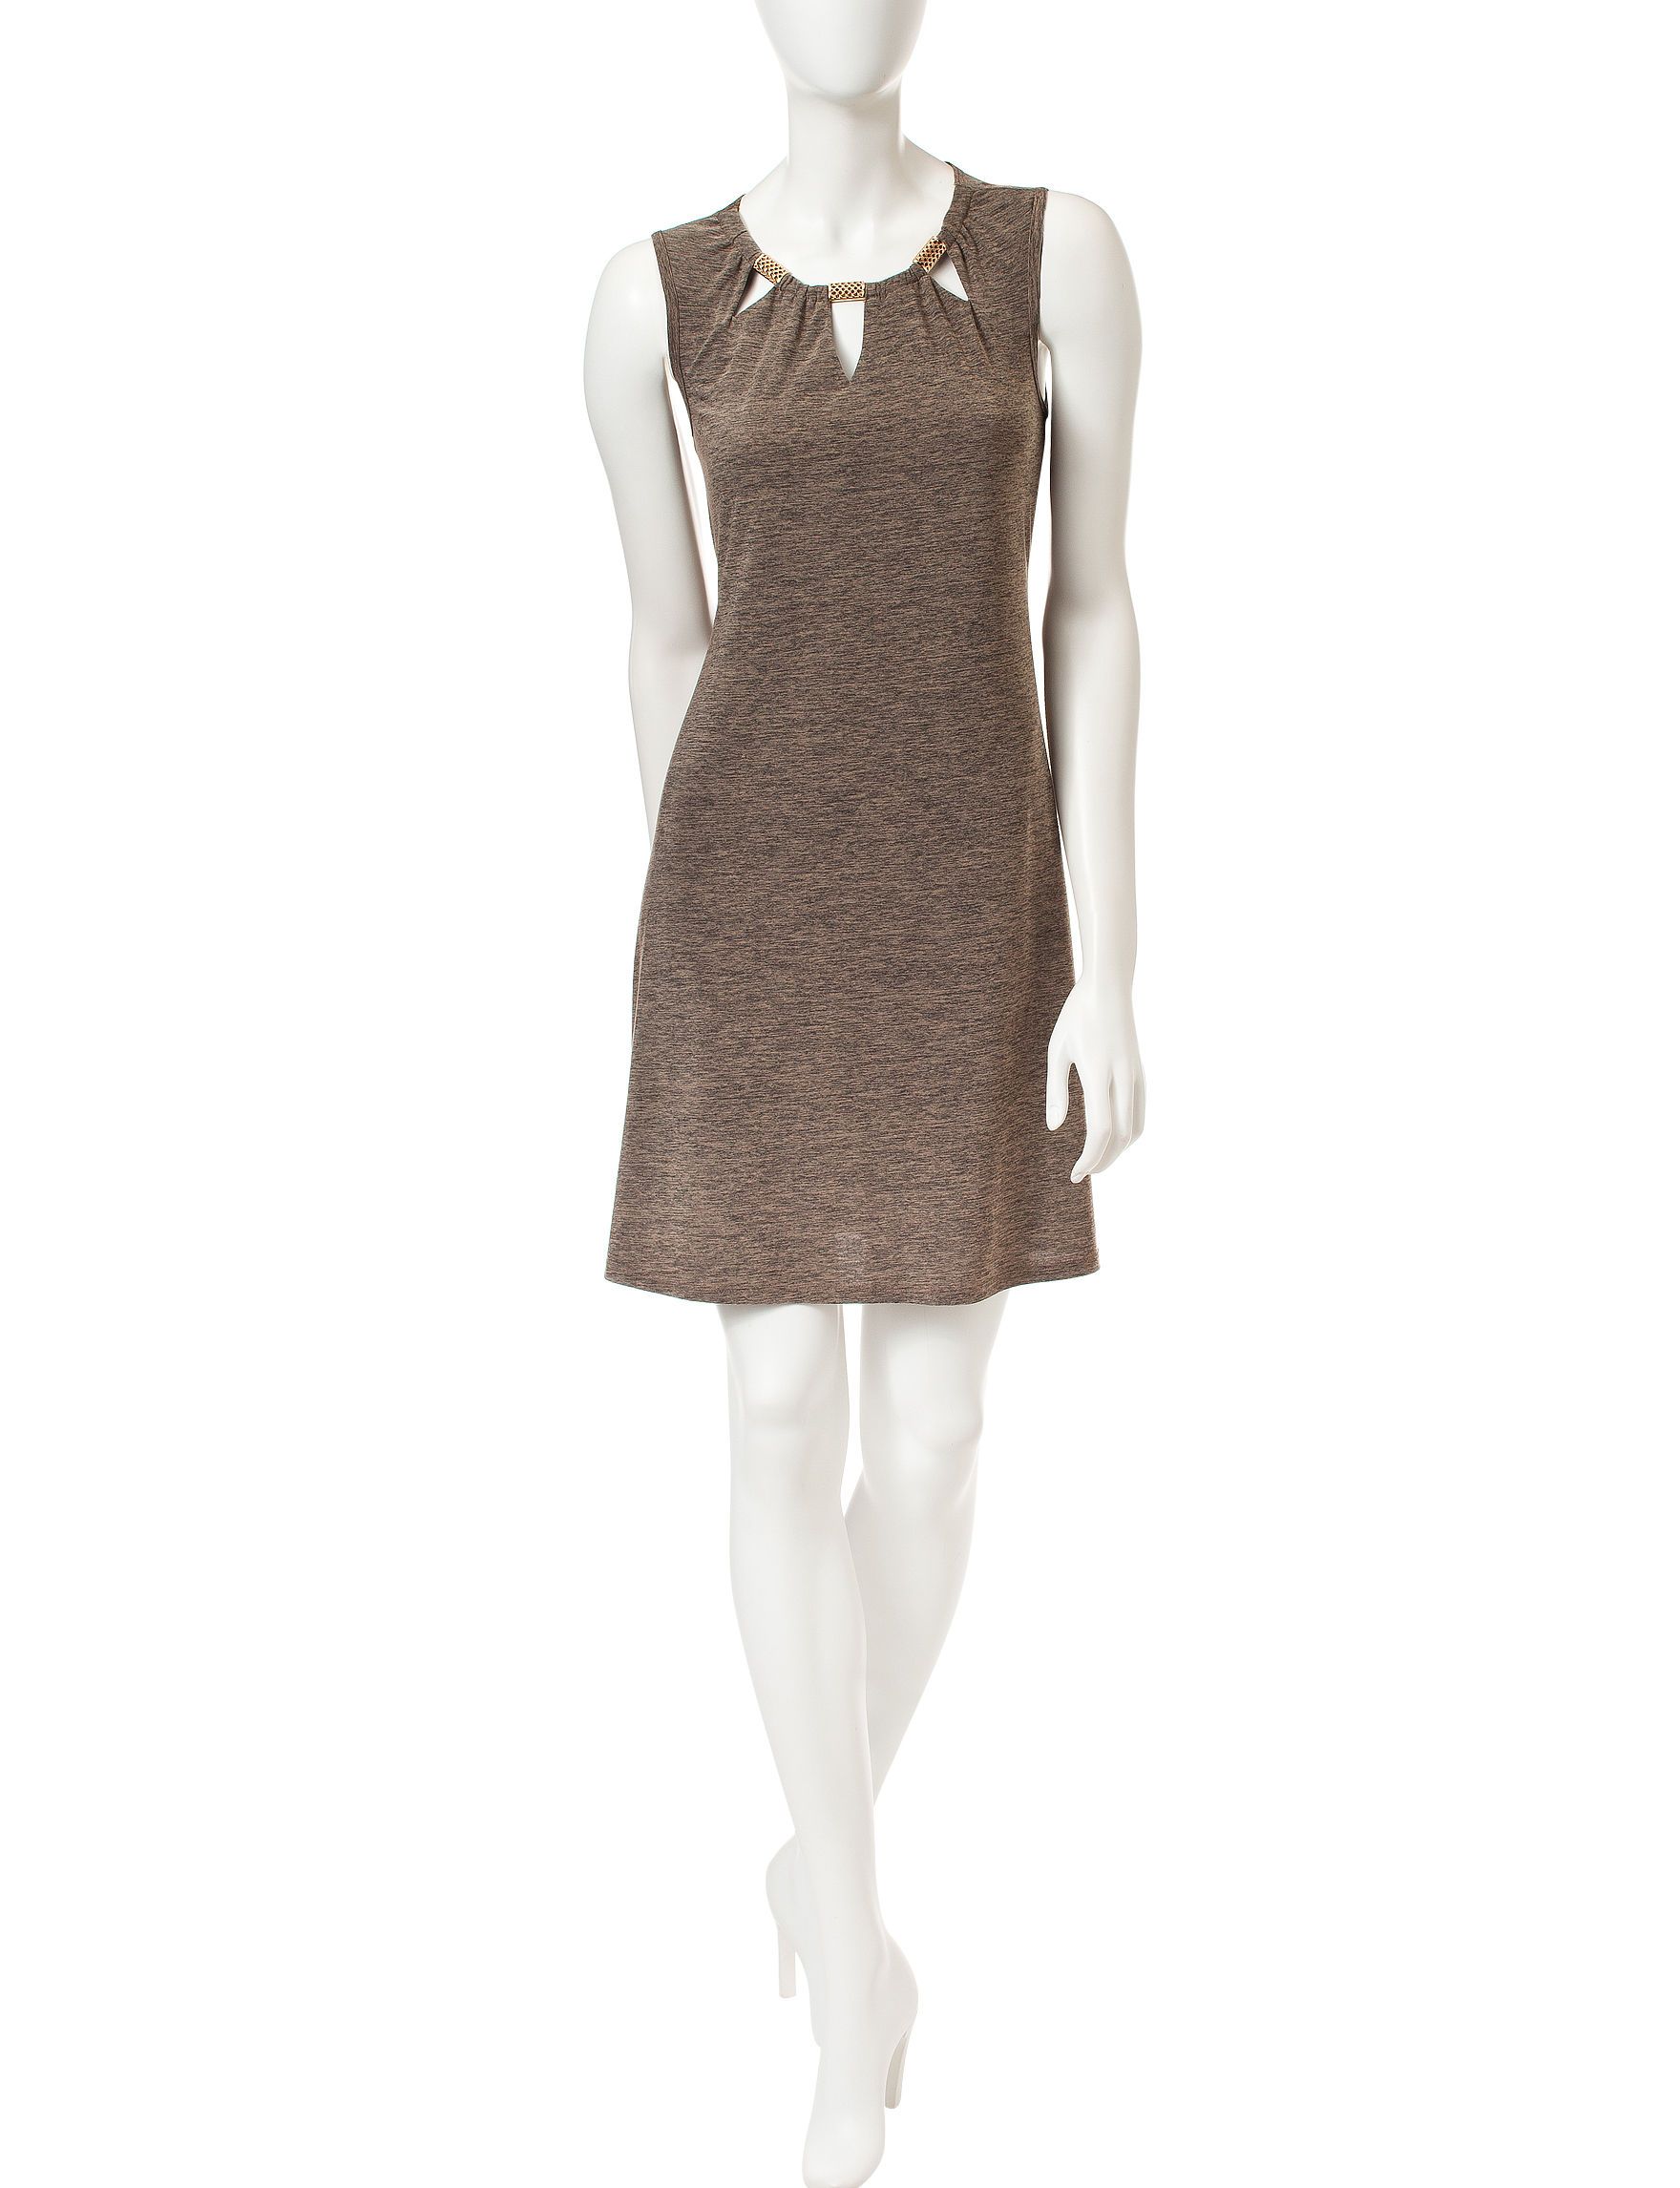 A. Byer Taupe A-line Dresses